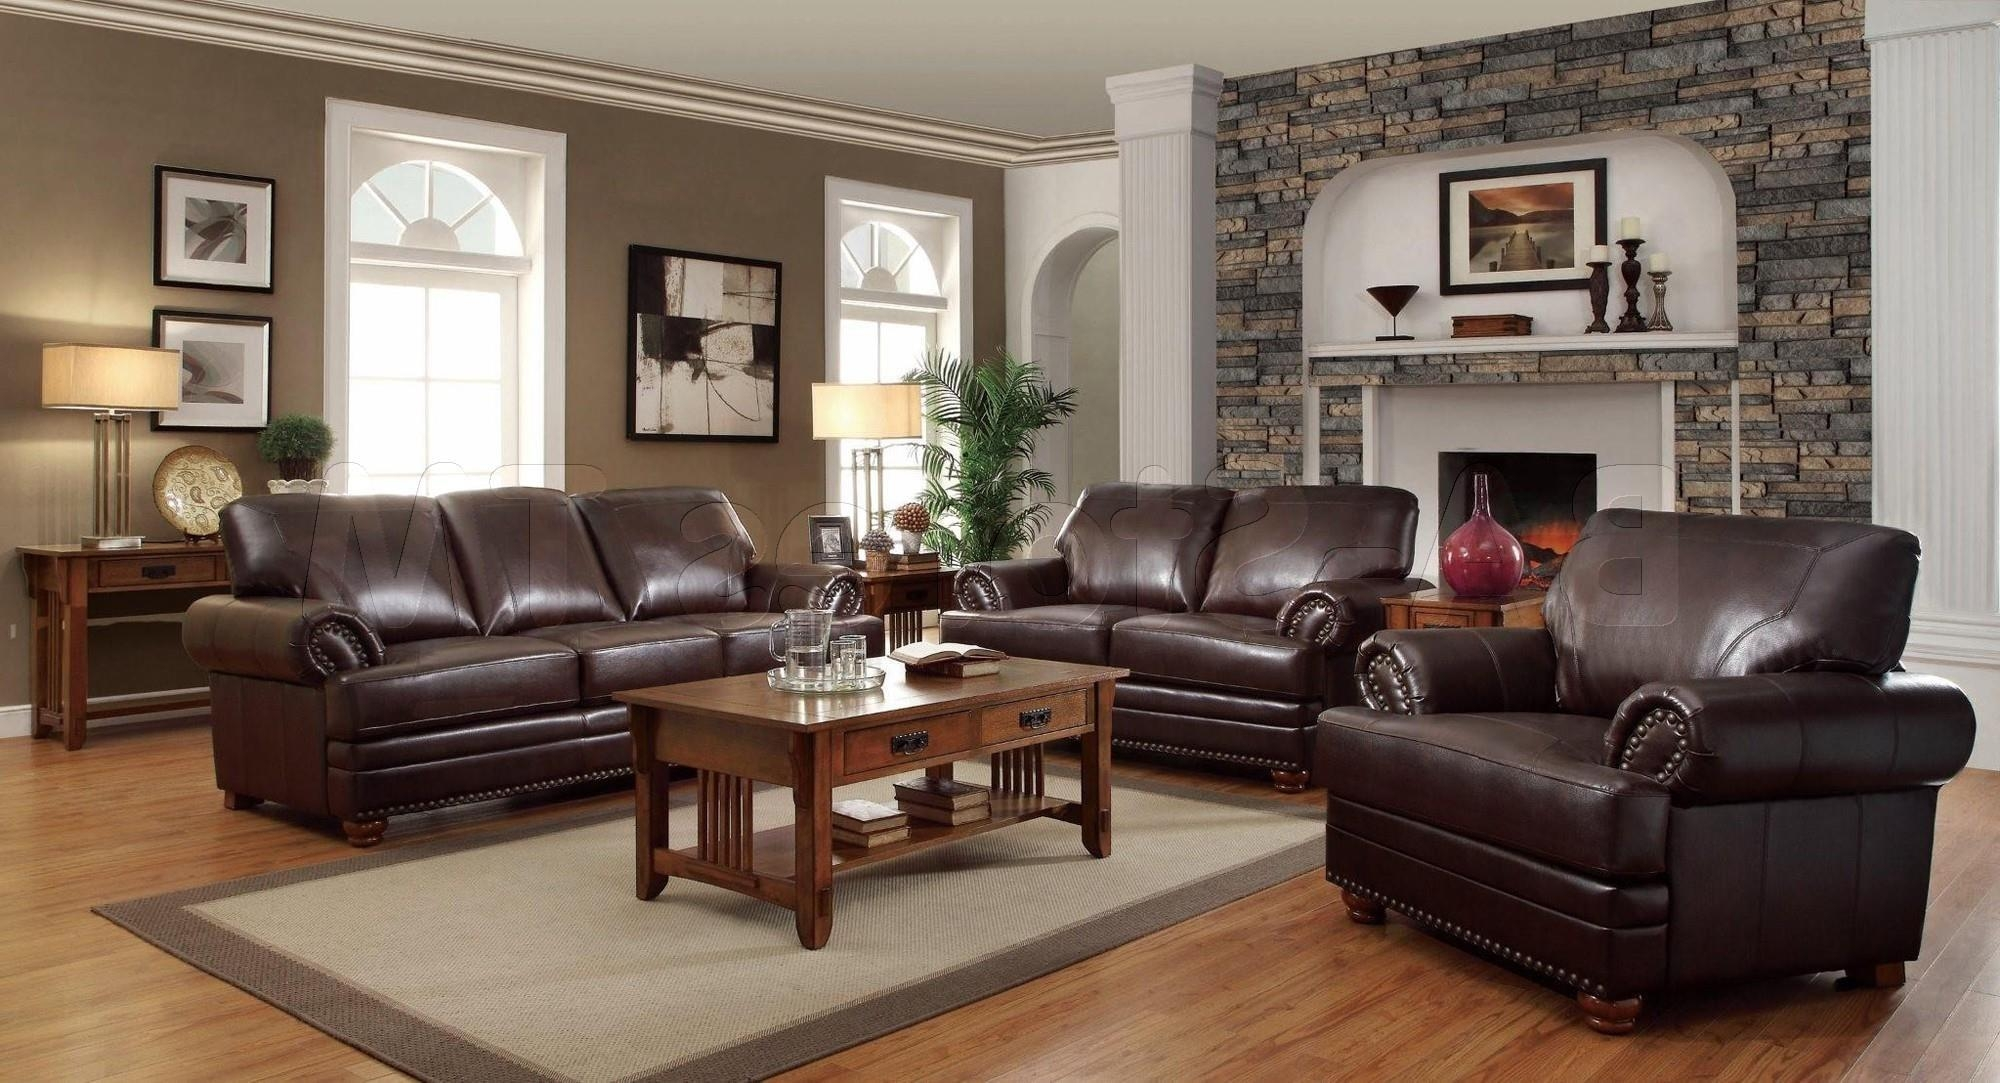 Awesome Decorating Ideas For Living Rooms With Brown Leather Pertaining To Living Room With Brown Sofas (View 7 of 20)